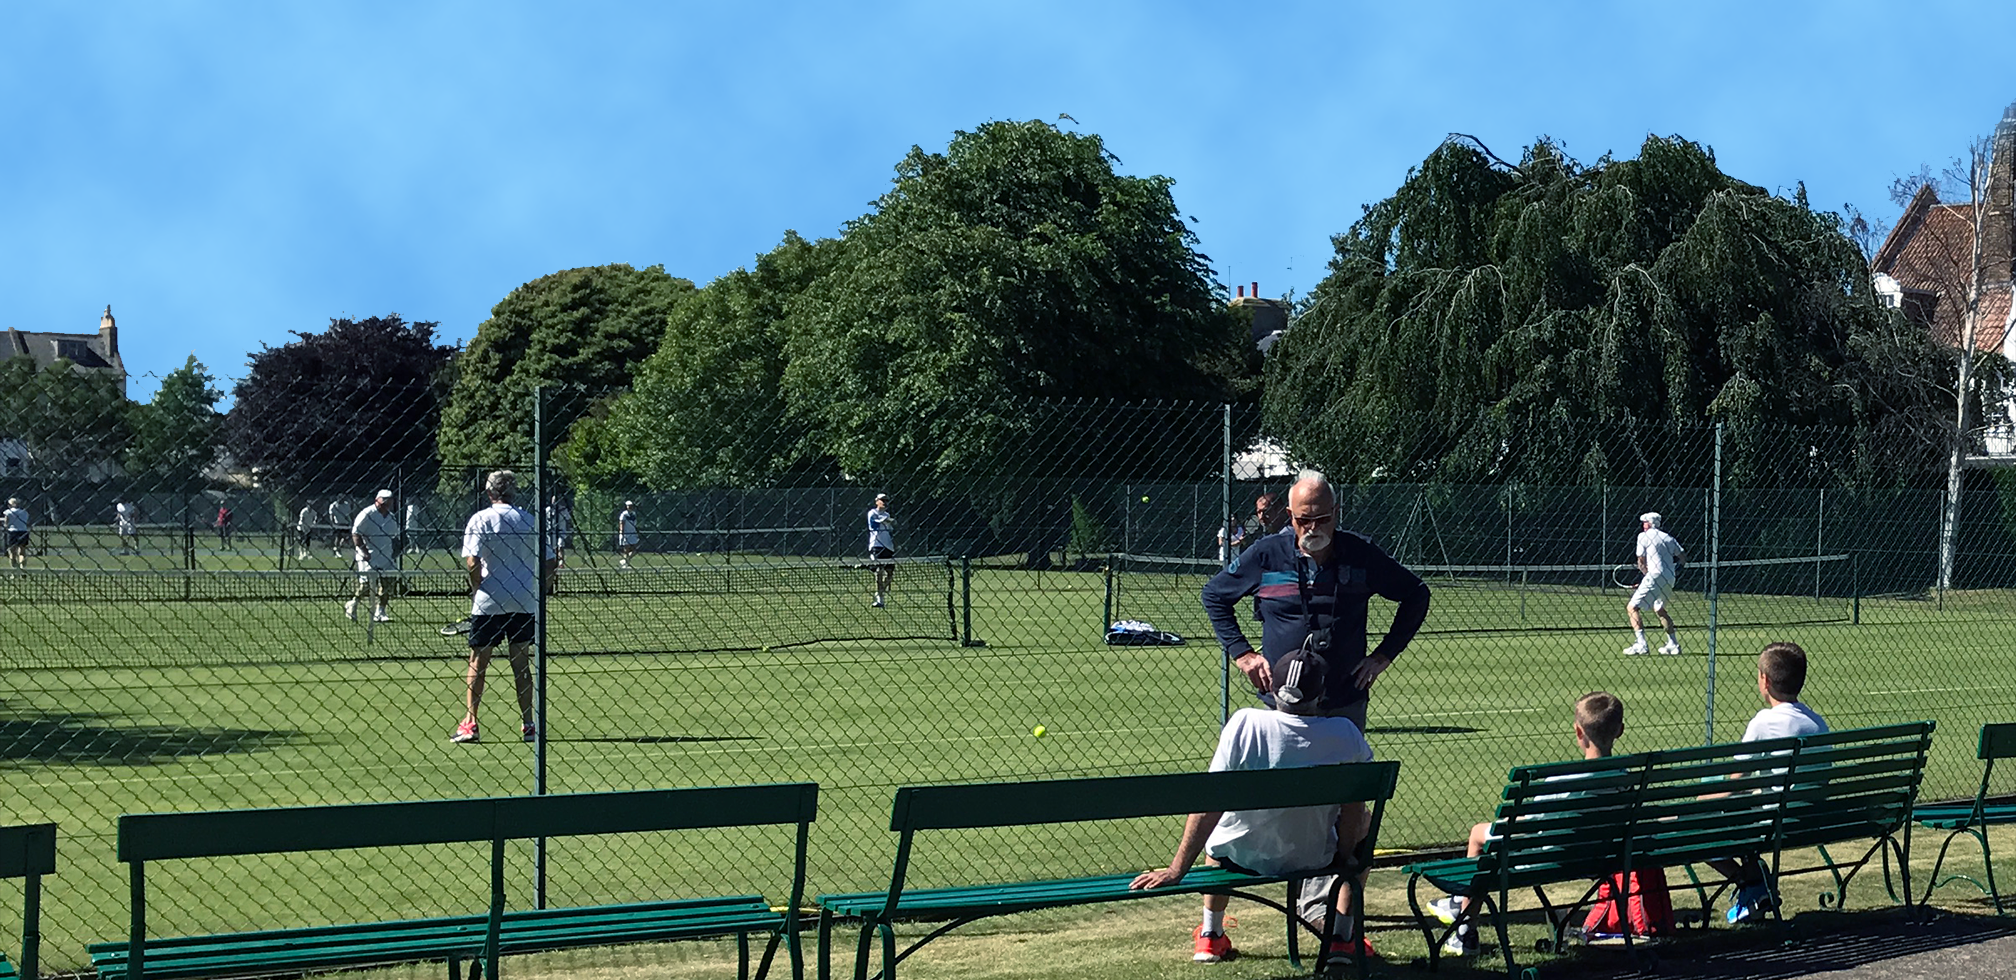 Walmer Lawn Tennis & Croquet Club